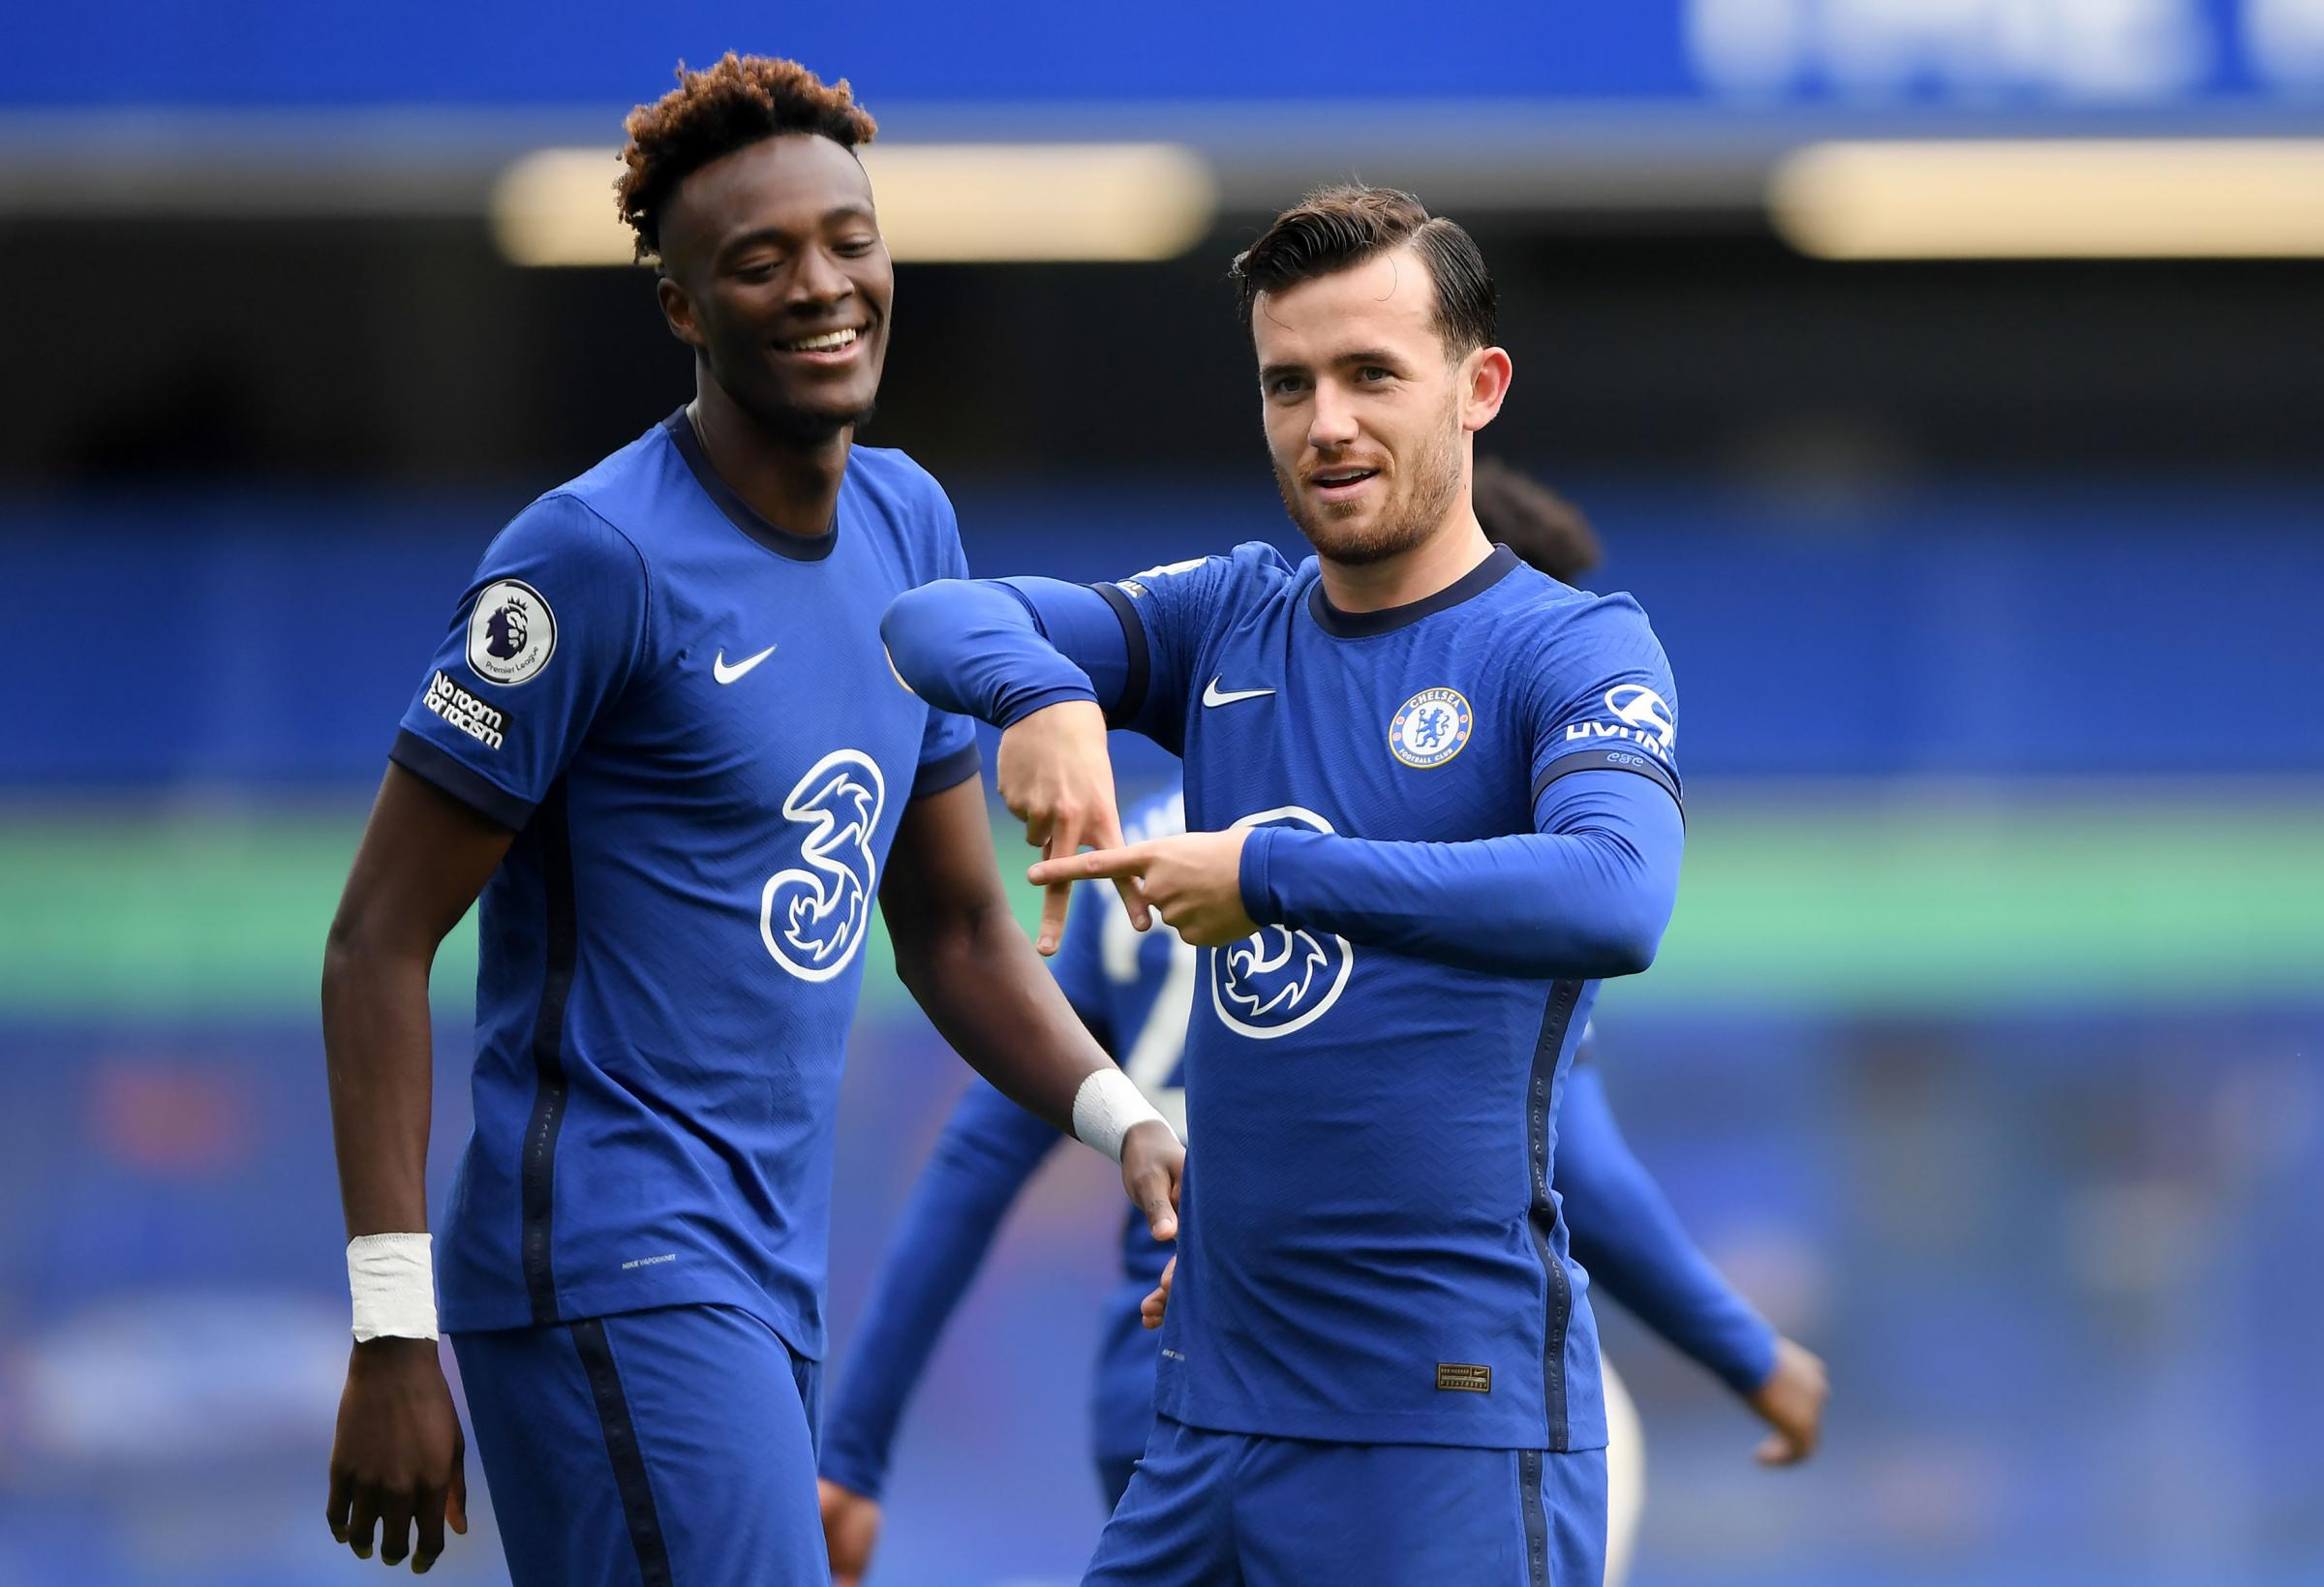 Tammy Abraham (left) and Ben Chilwell (right)